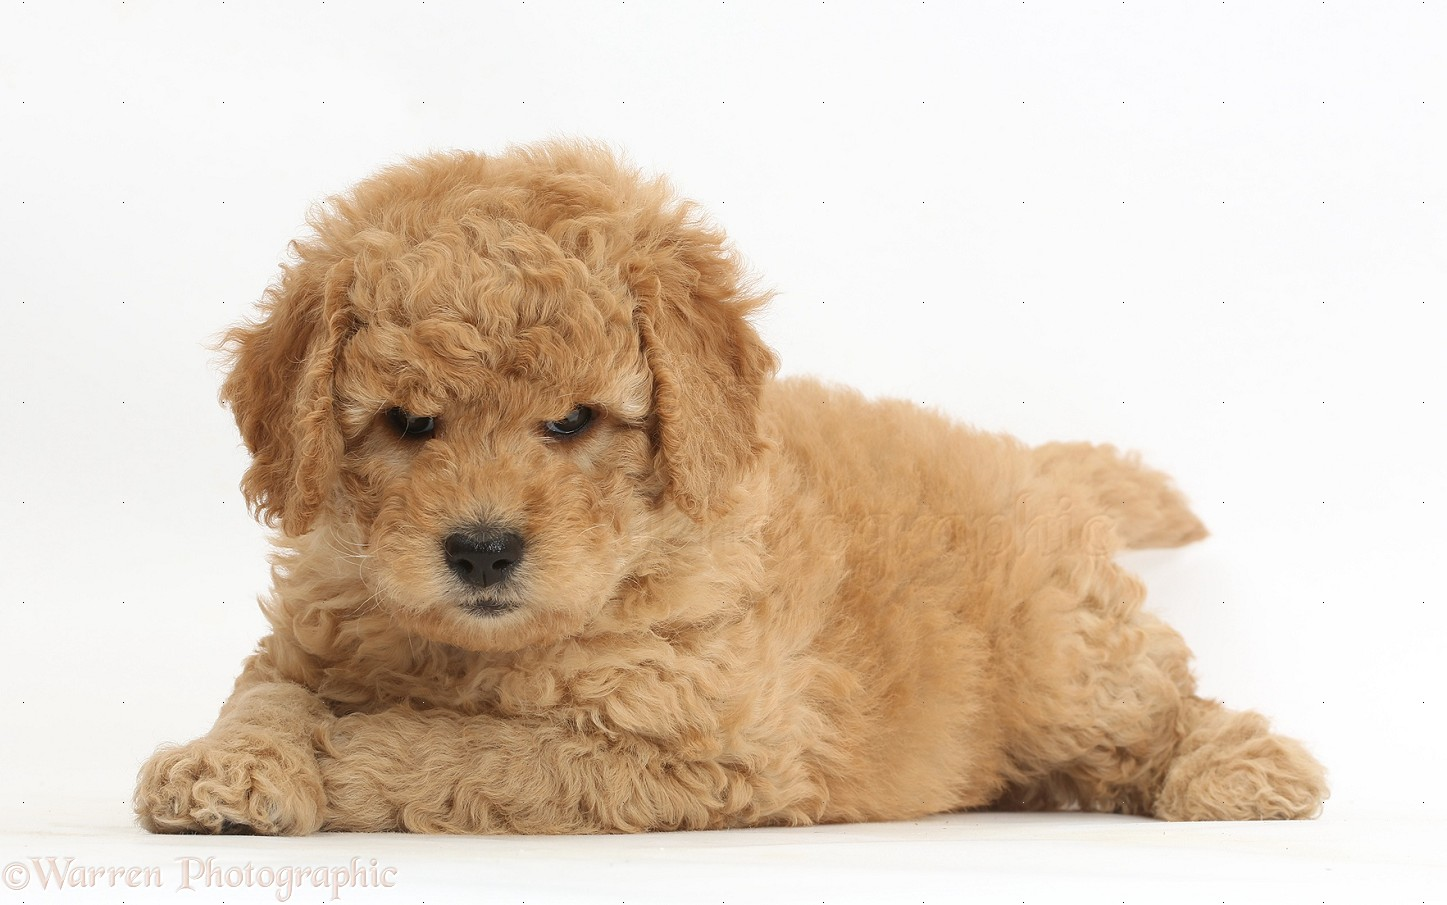 Dog Cute F1b Goldendoodle Puppy Photo Wp37284